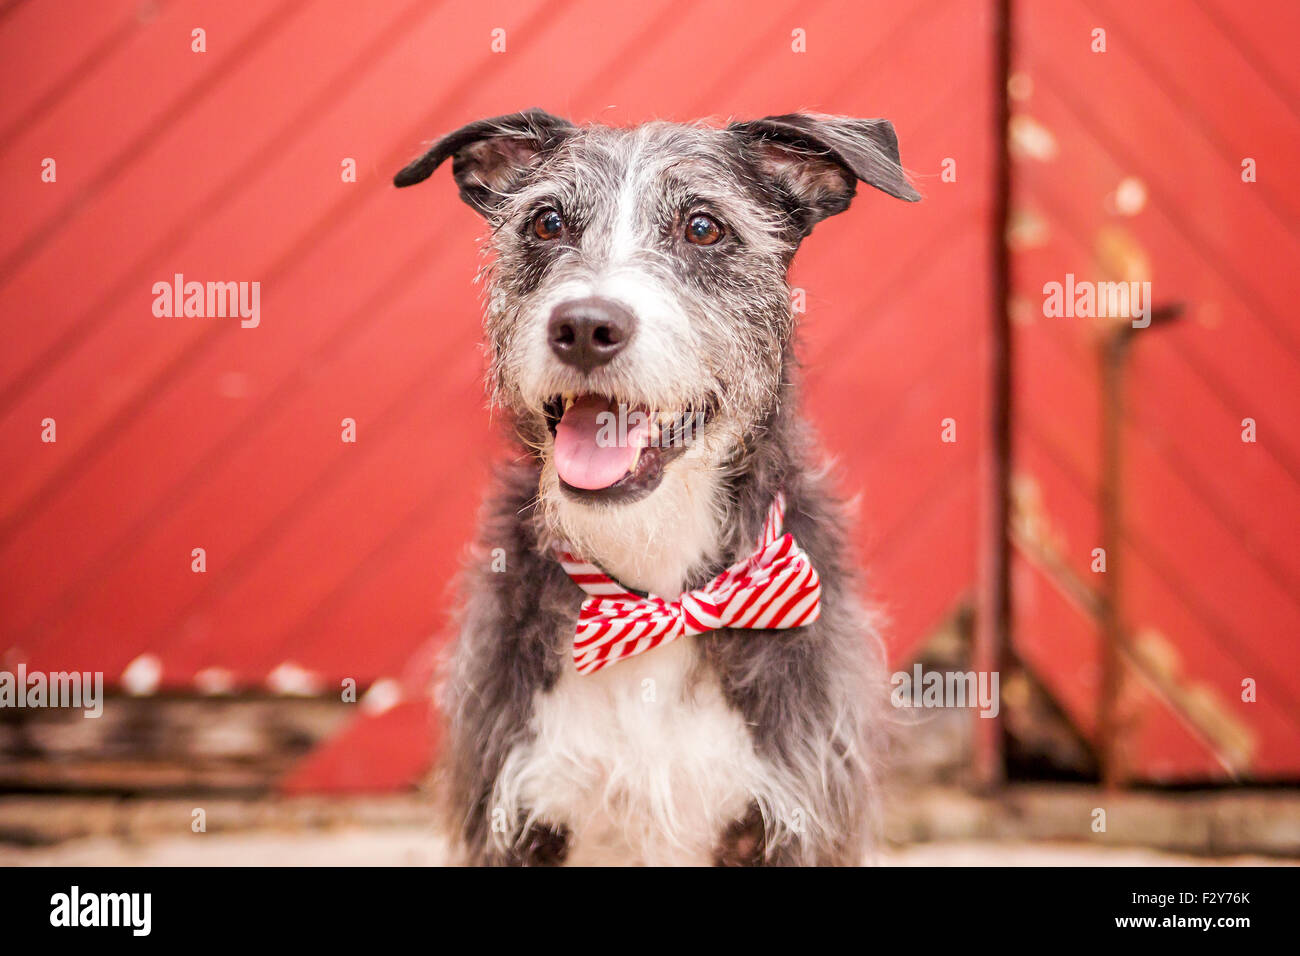 Scruffy dog with a bow tie smiling - Stock Image